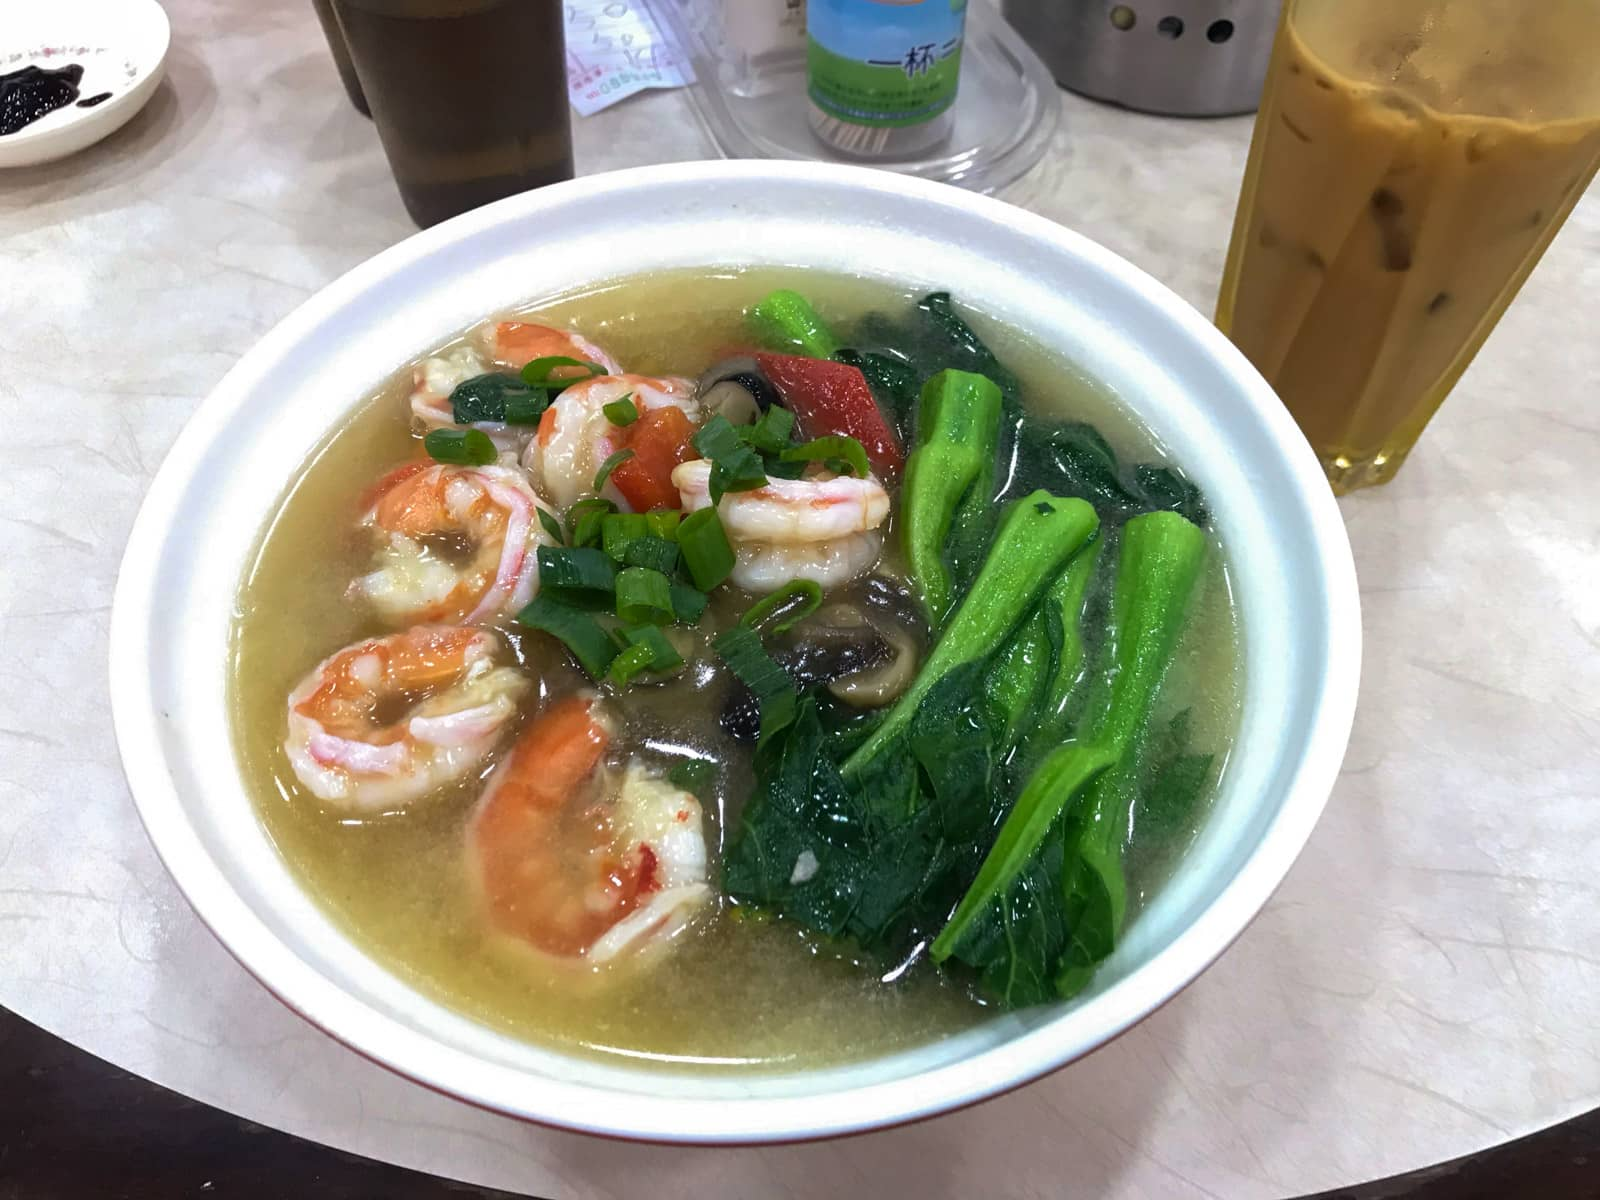 A bowl of soup with Asian greens, many prawns and some other vegetables